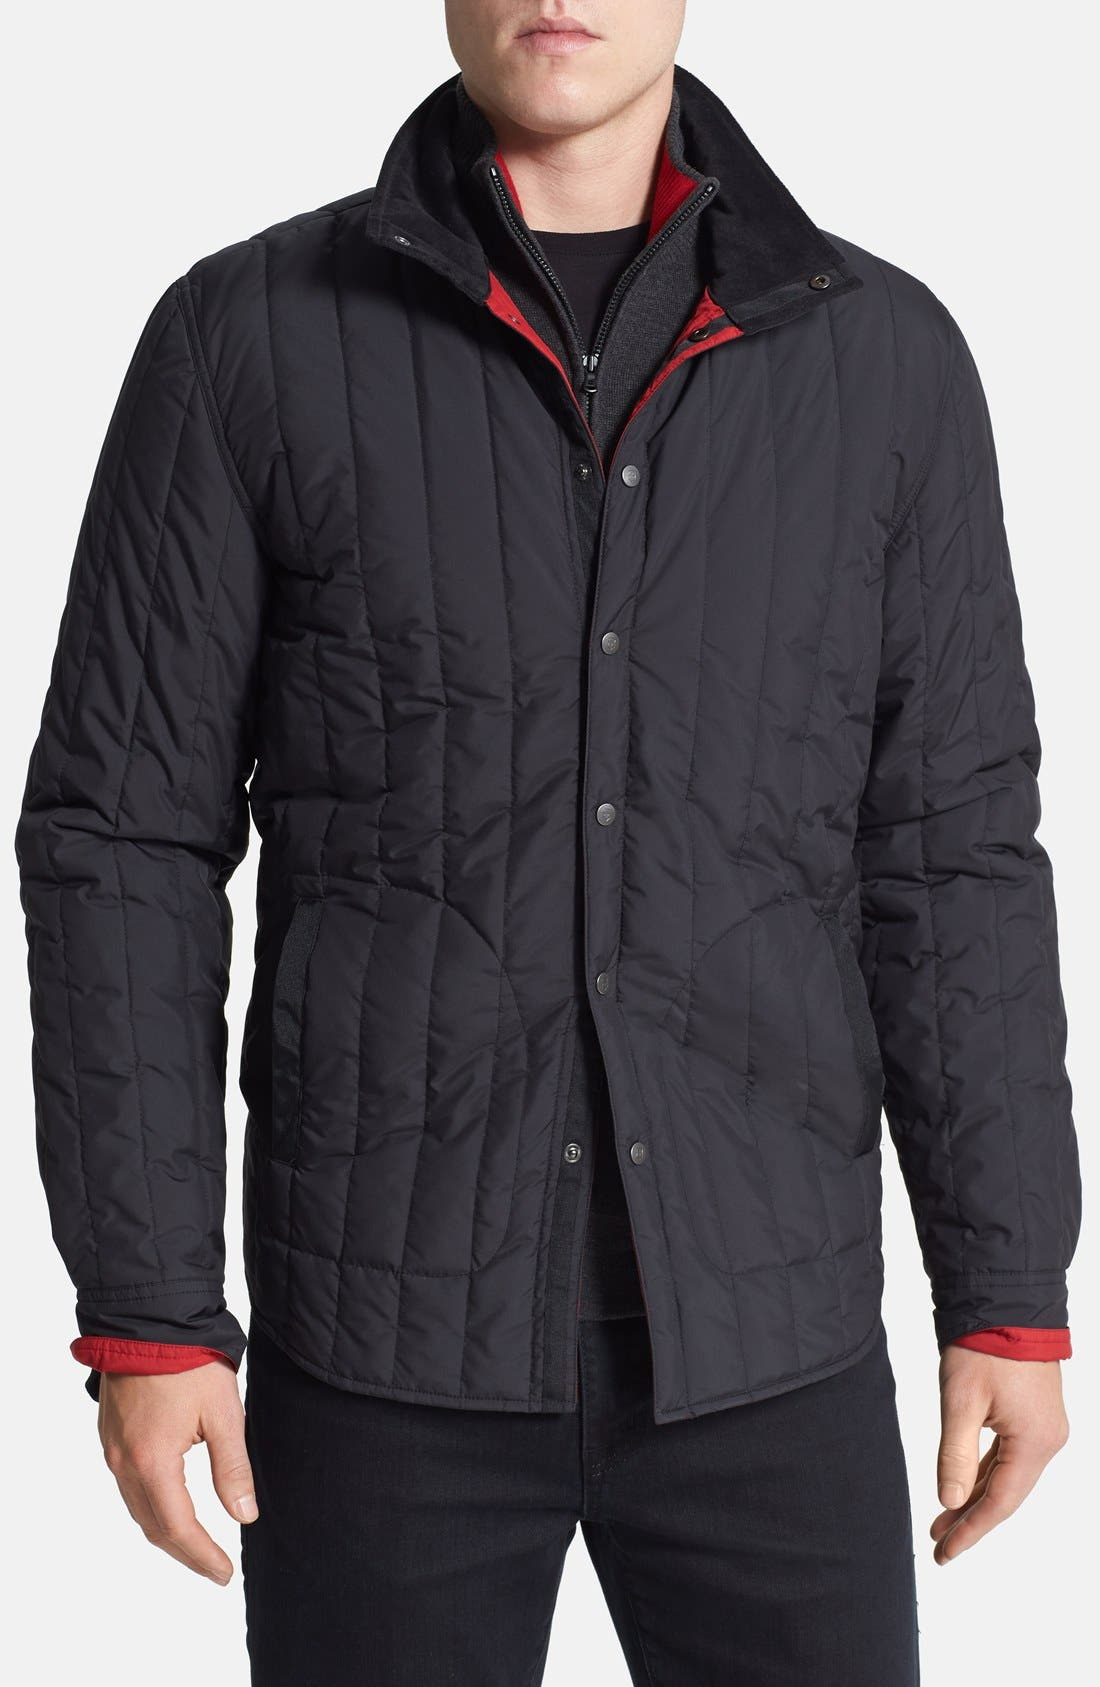 Alternate Image 1 Selected - Victorinox Swiss Army® 'Granger' Water Repellent Thermore® Insulated Utility Jacket (Online Only)